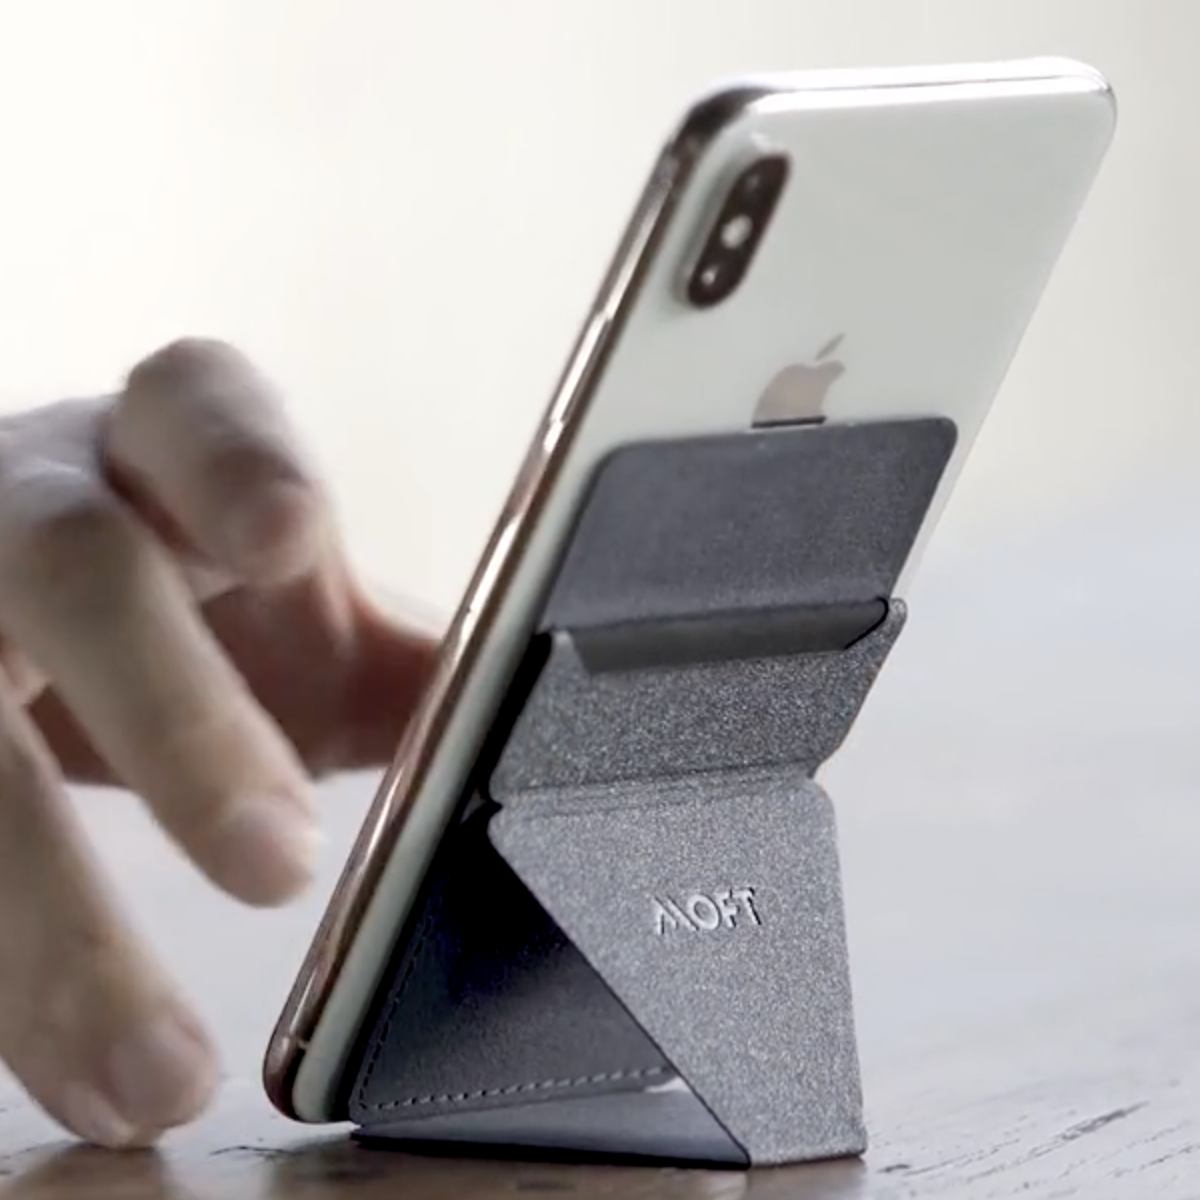 Moft X: The Paper-thin Phone & Tablet Stand